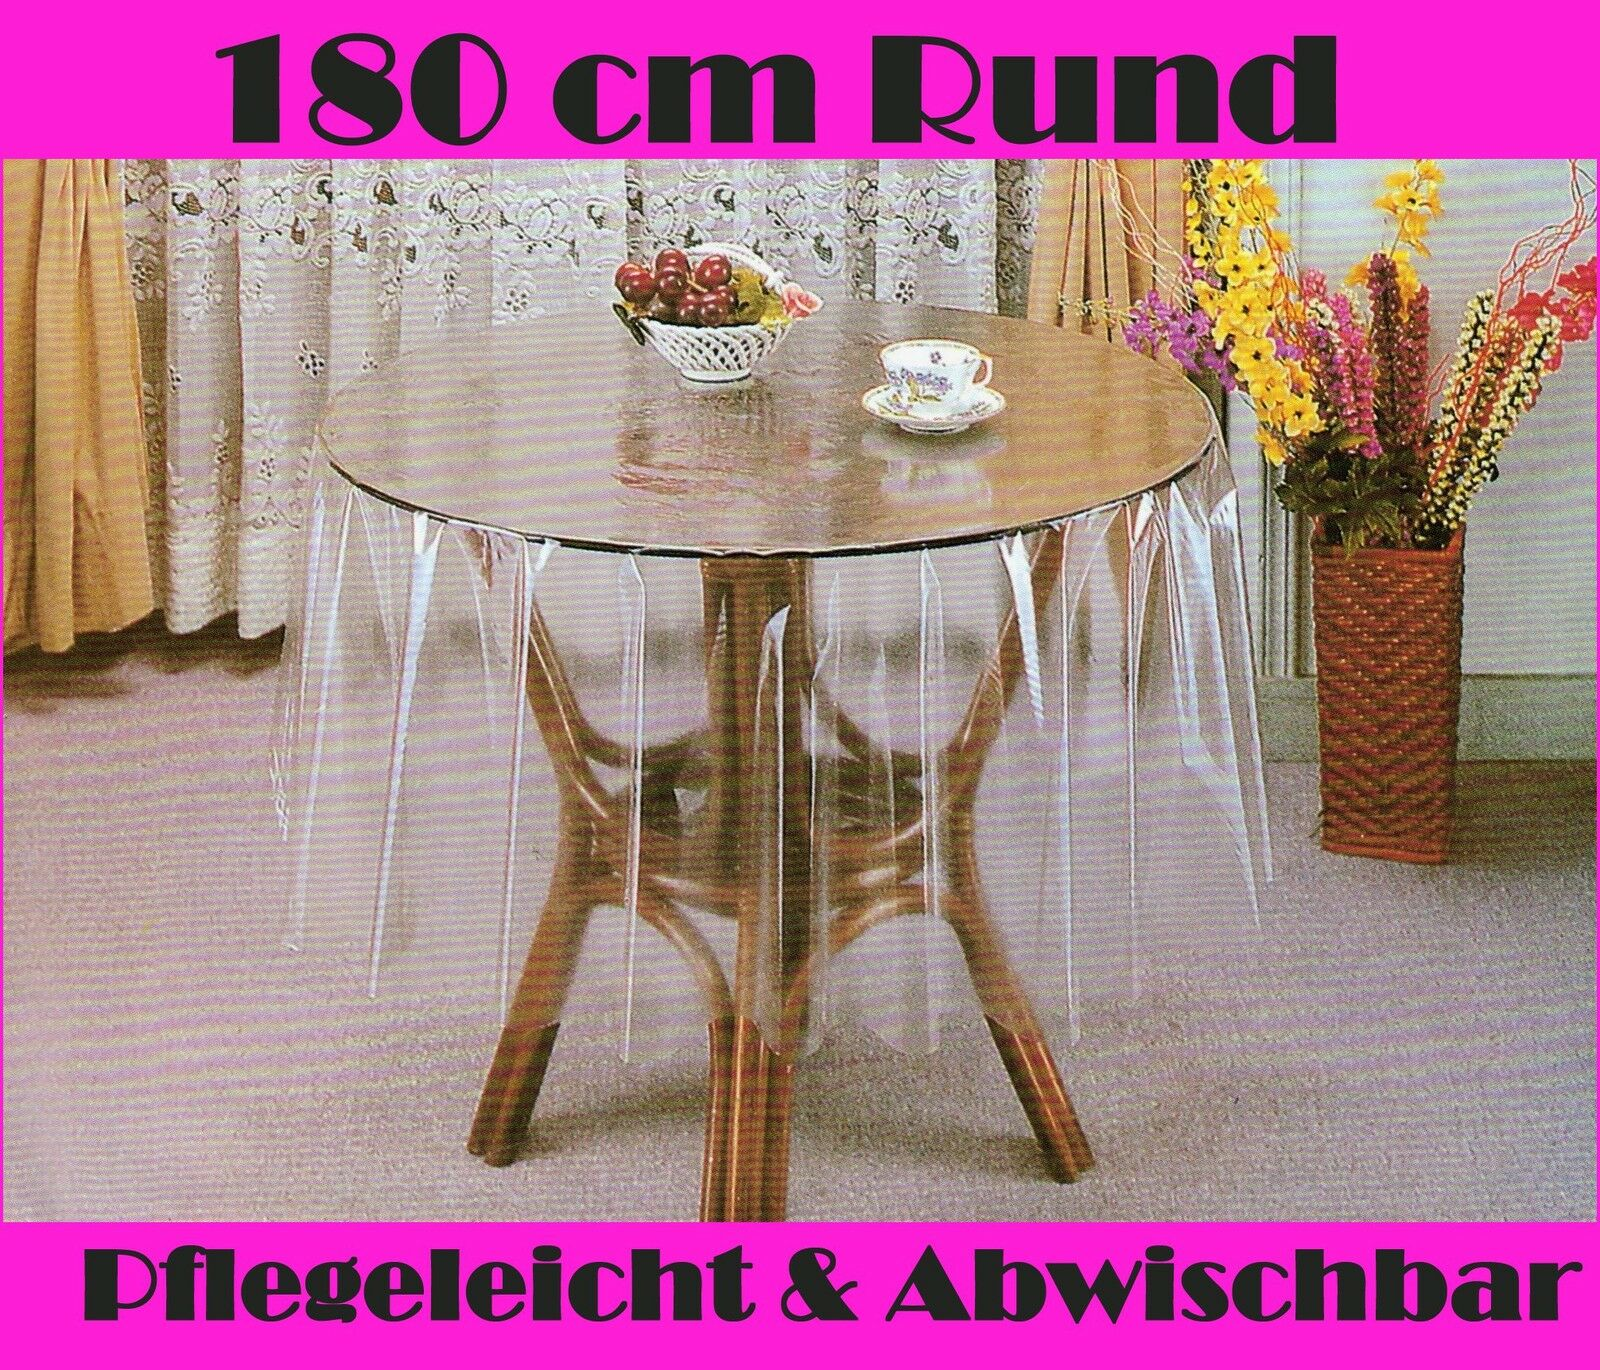 180 rund tischdecke durchsichtig transparent schutzdecke pflegeleicht vinly neu ebay. Black Bedroom Furniture Sets. Home Design Ideas